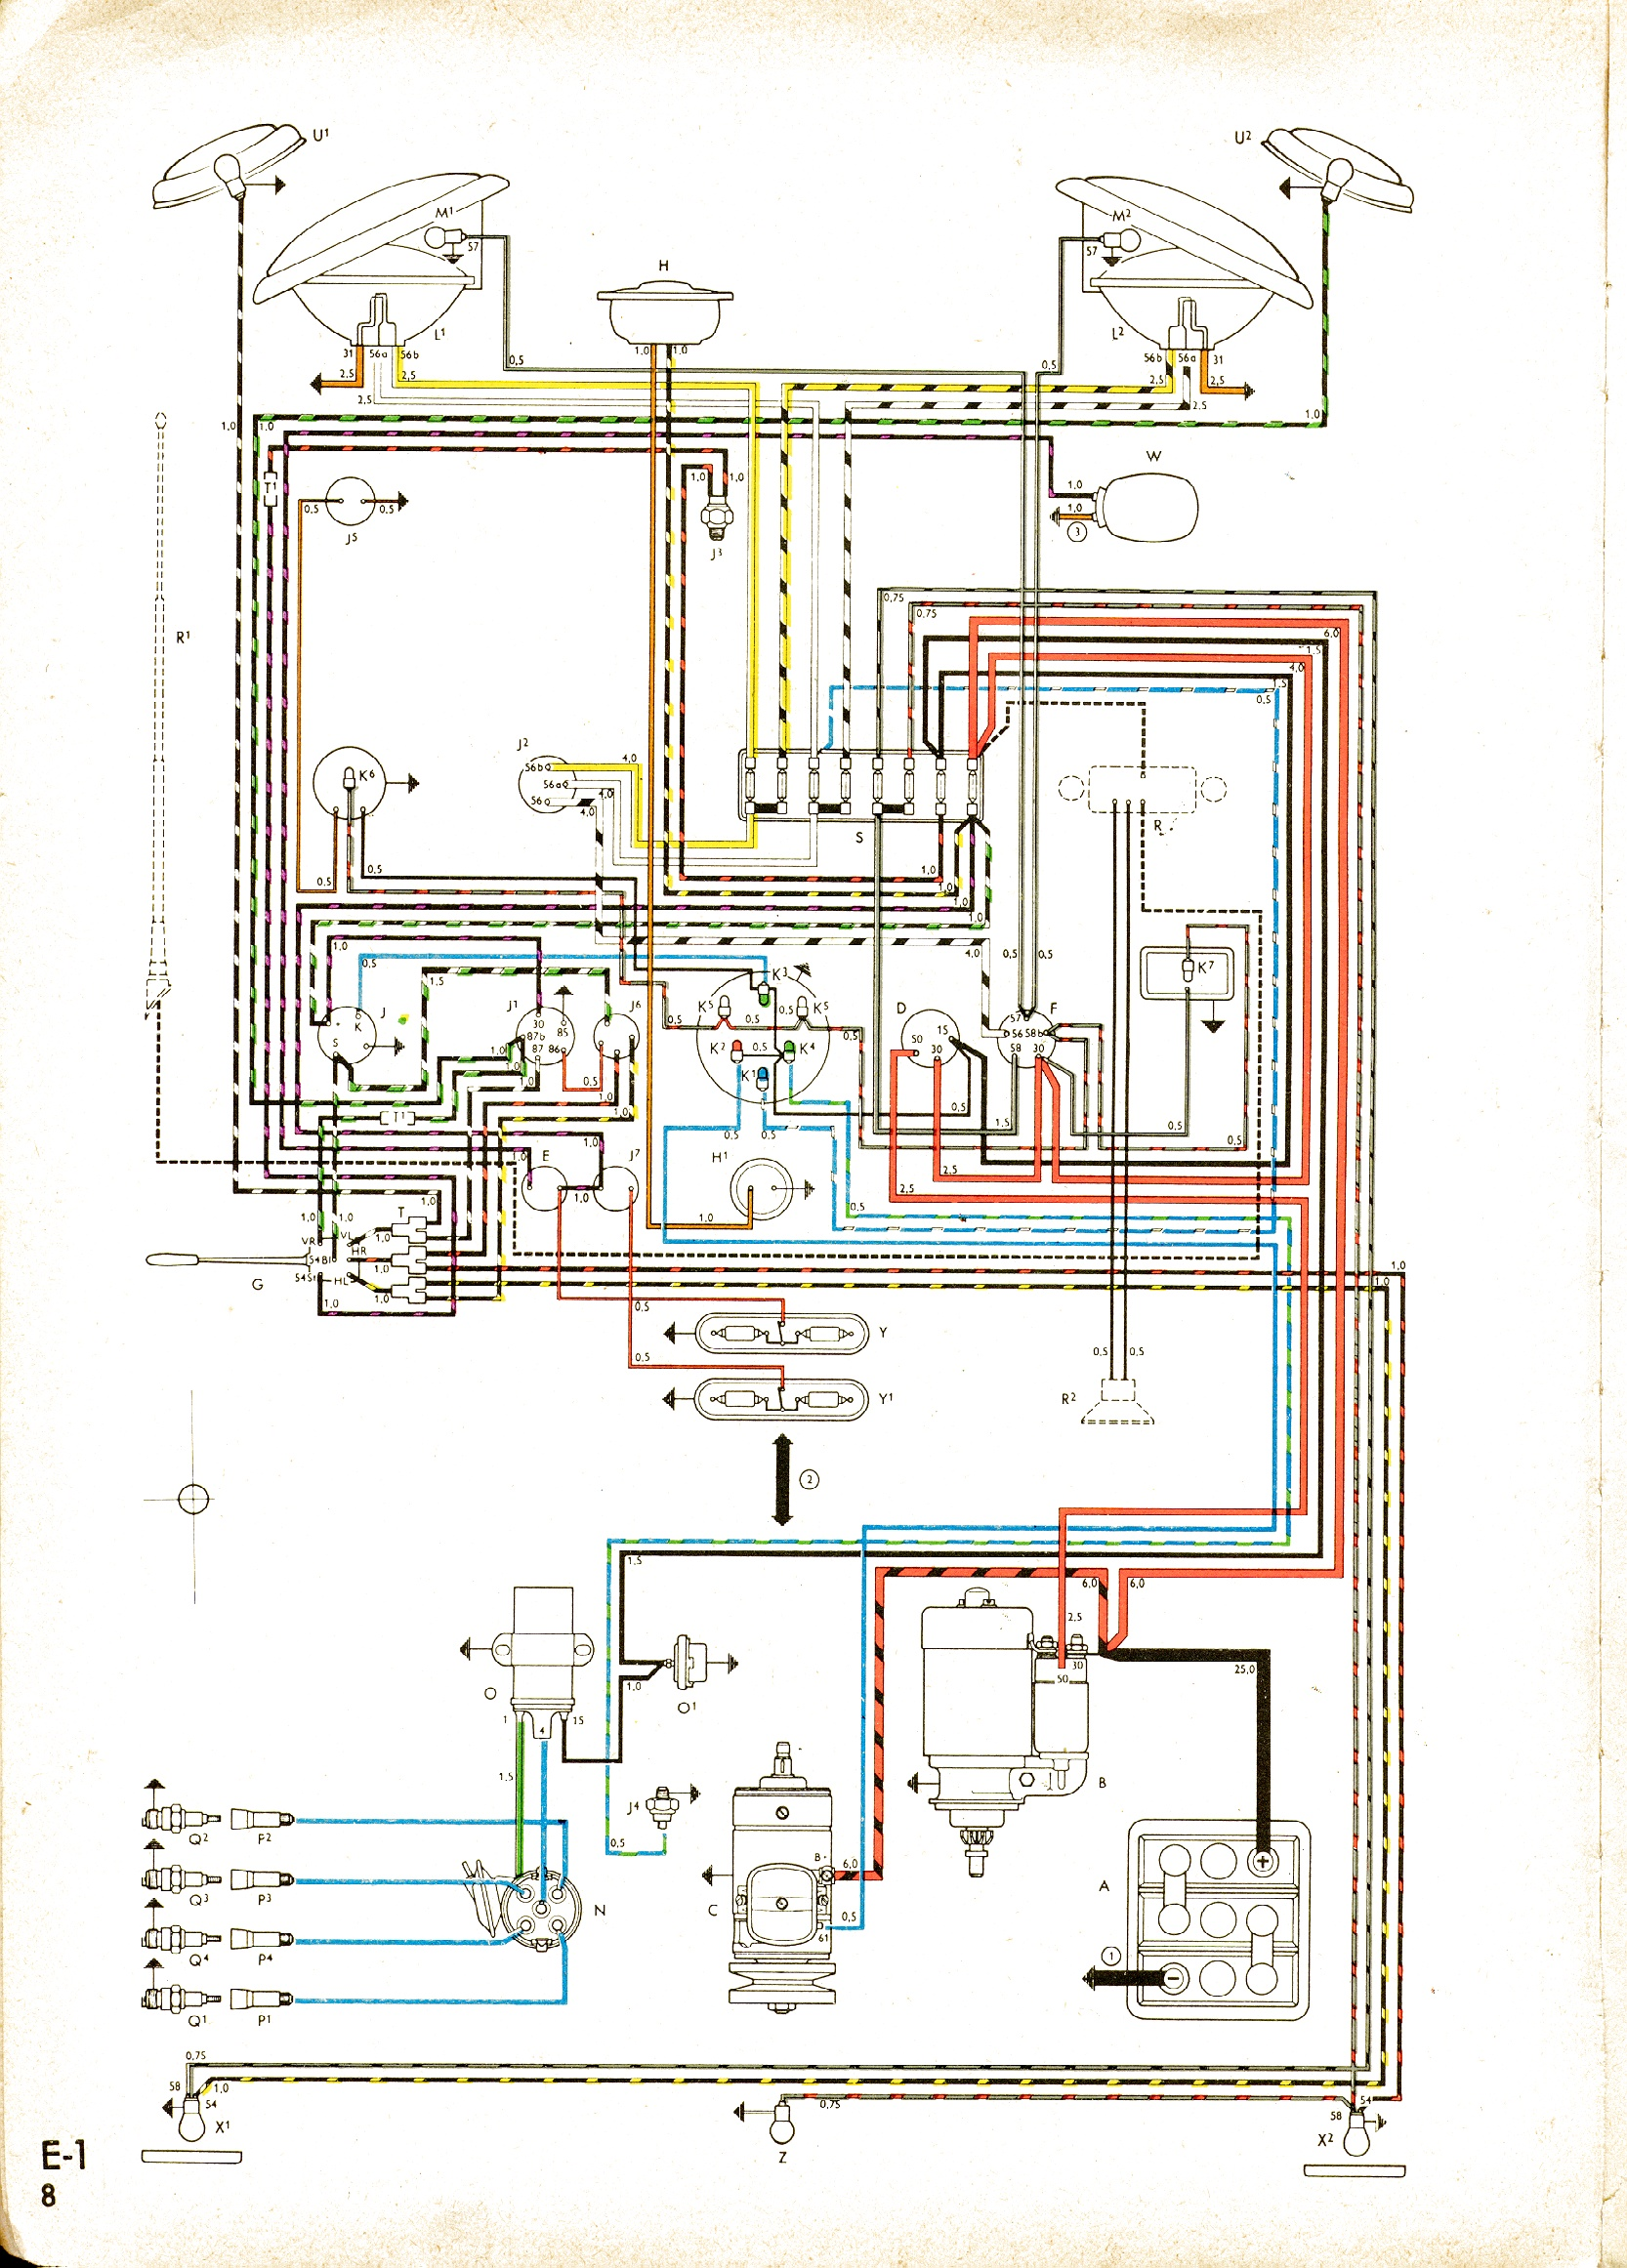 VW Wiring Diagrams | Bus Electrical Wiring Diagrams |  | www.volkspower.nl